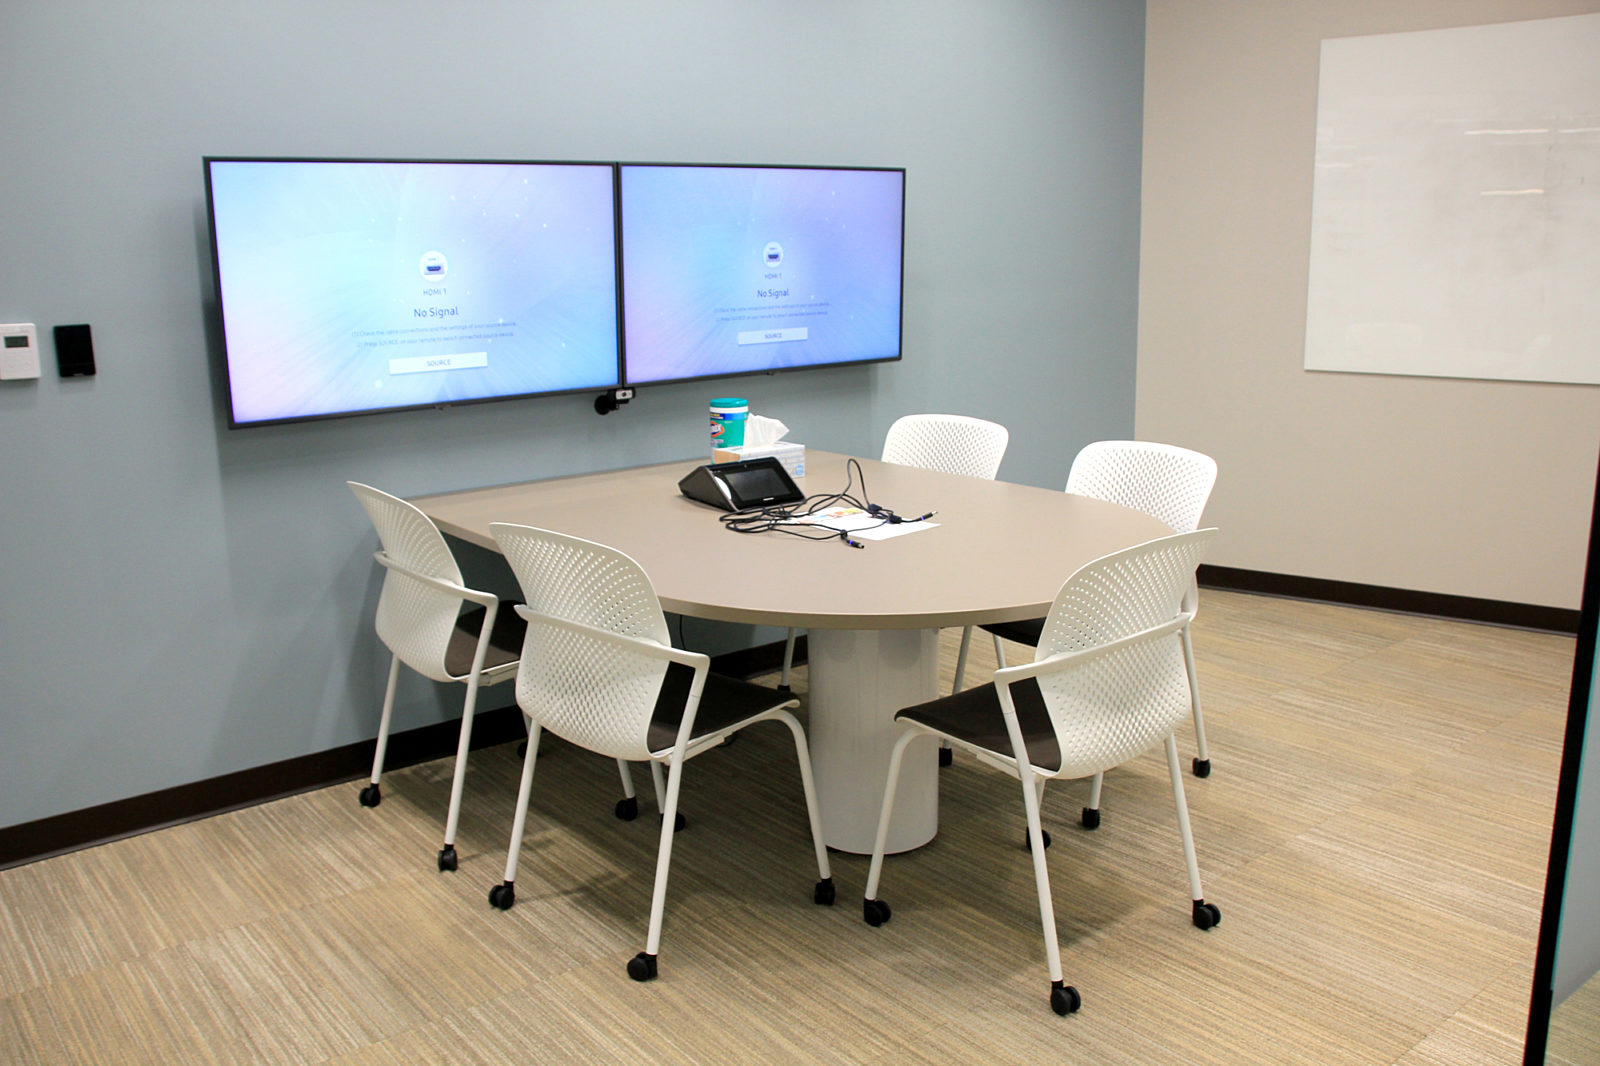 A D-Shaped table attached to a wall with two mounted TV screens surrounded by white mobile Caper chairs.